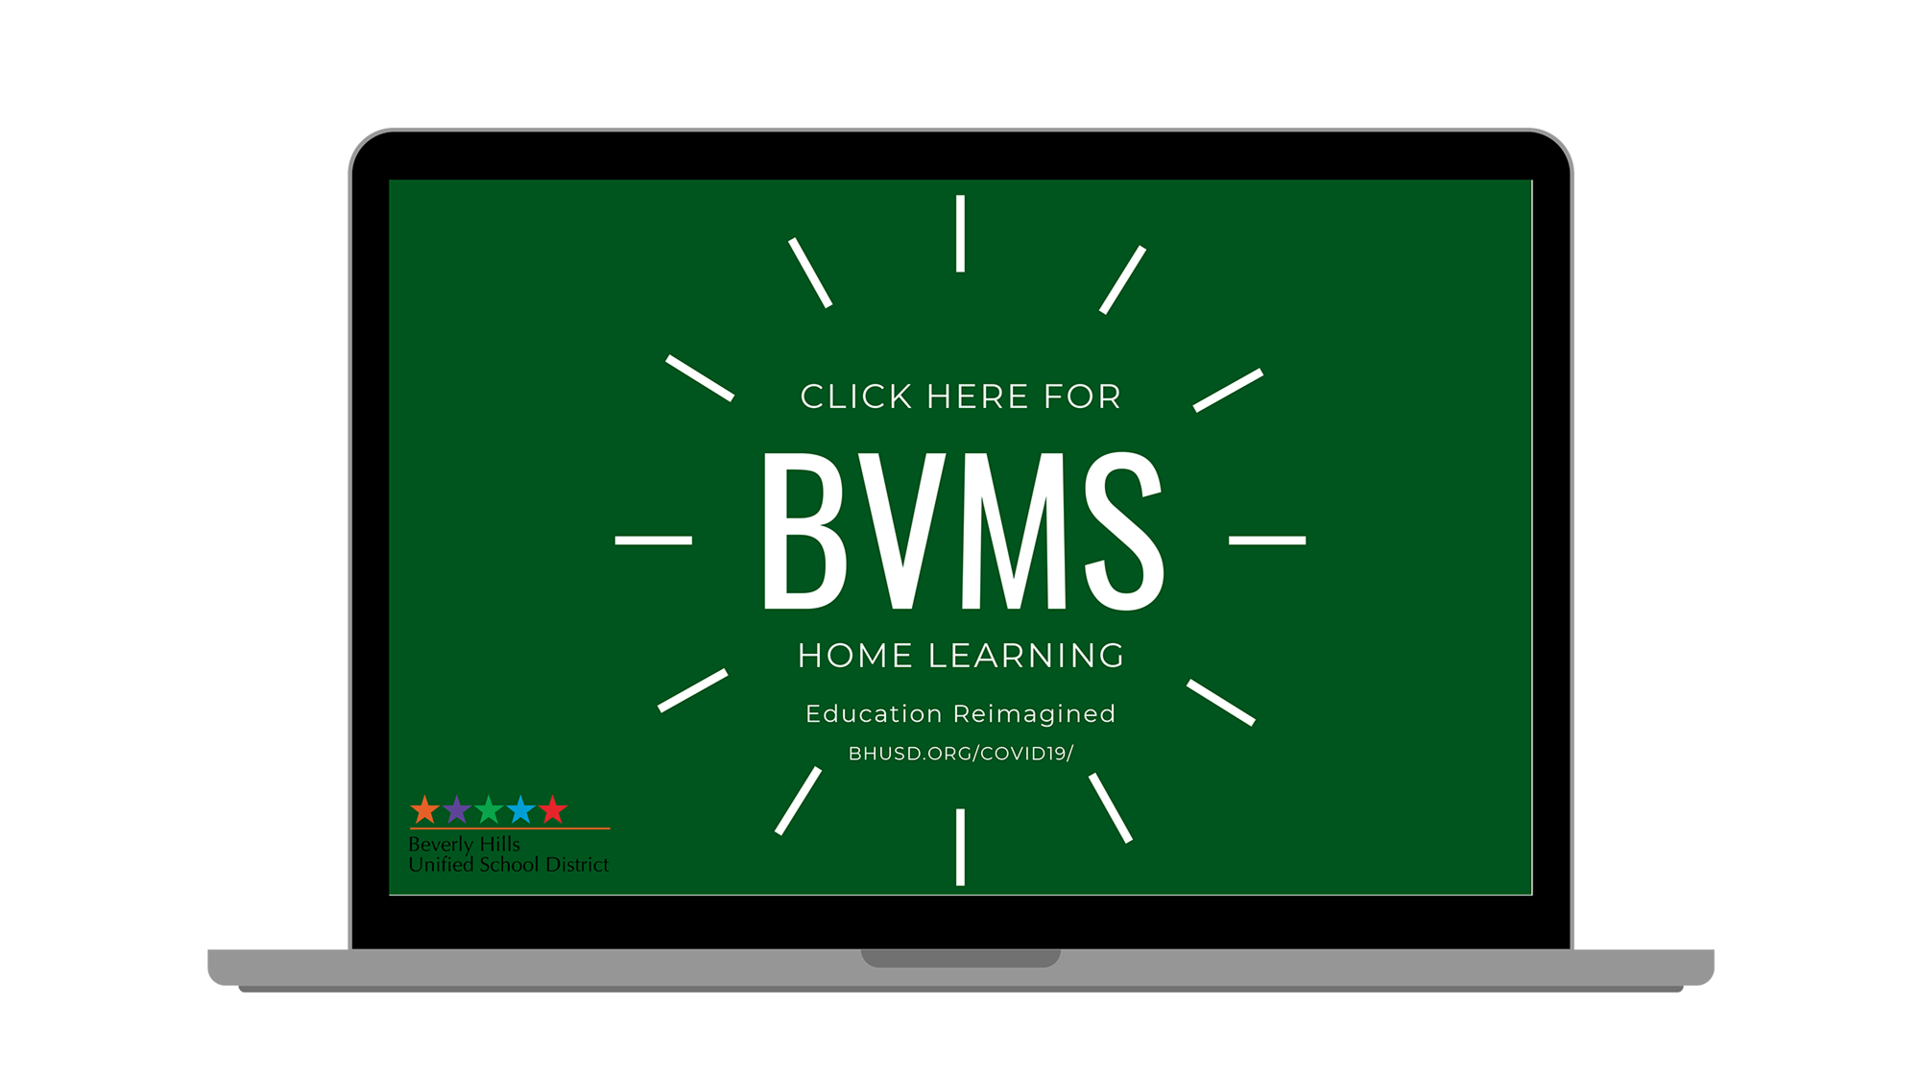 BVMS Home Learning